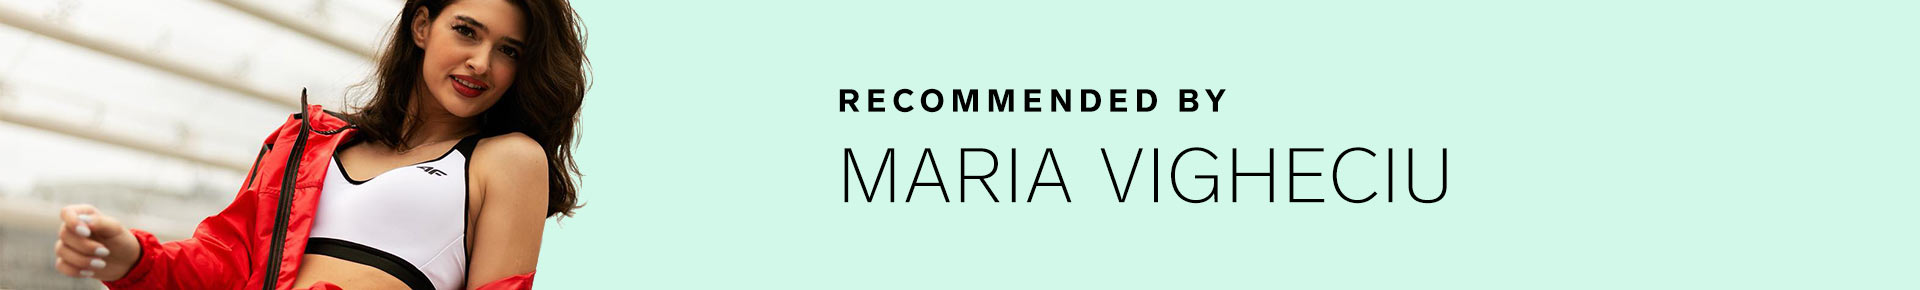 Recommended by Maria Vigheciu